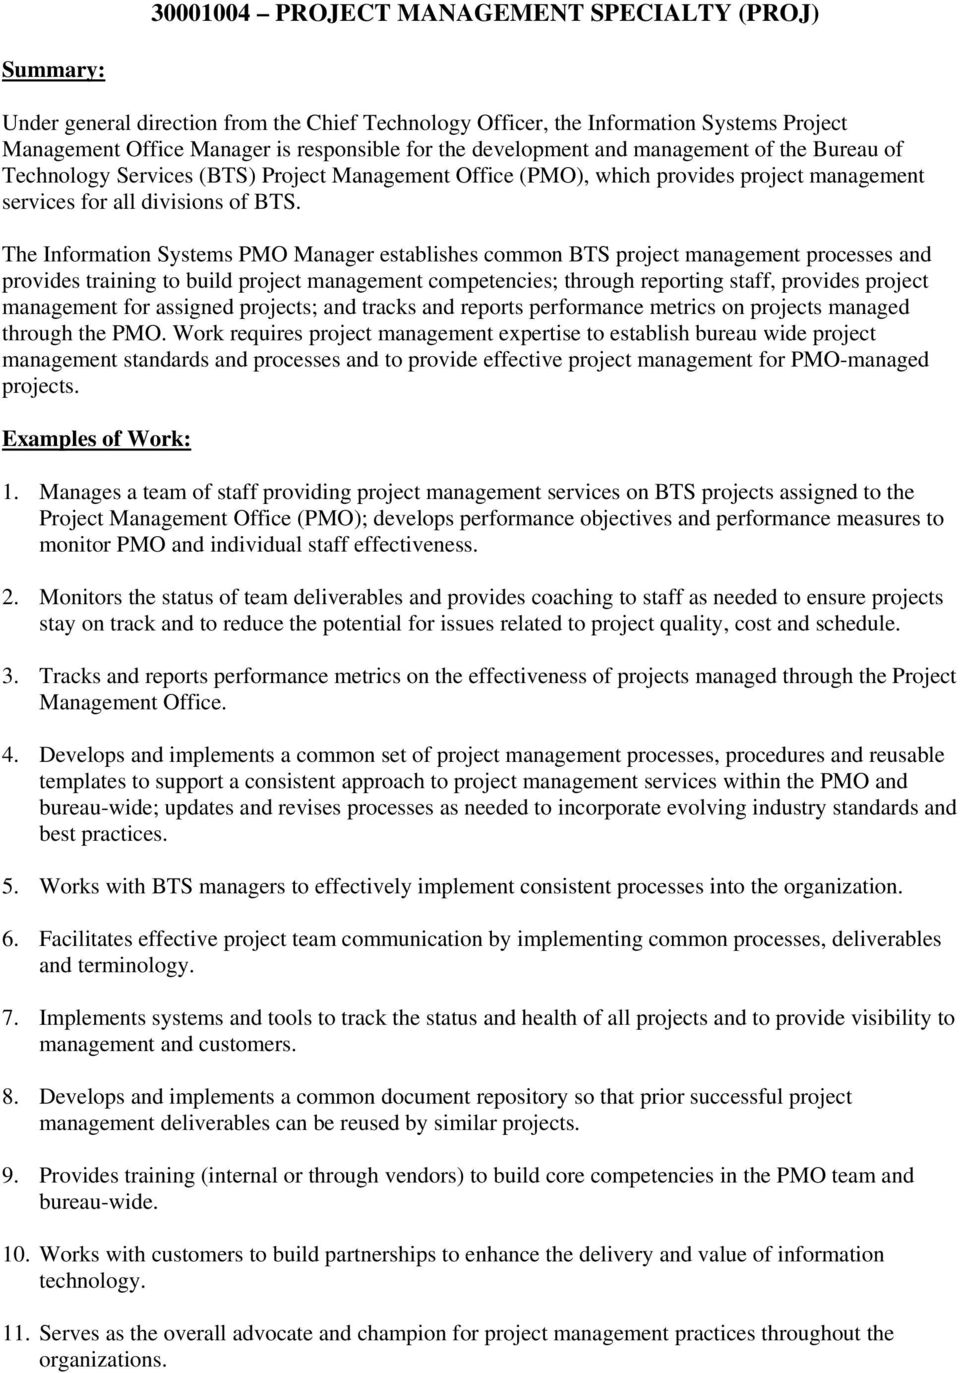 The Information Systems PMO Manager establishes common BTS project management processes and provides training to build project management competencies; through reporting staff, provides project